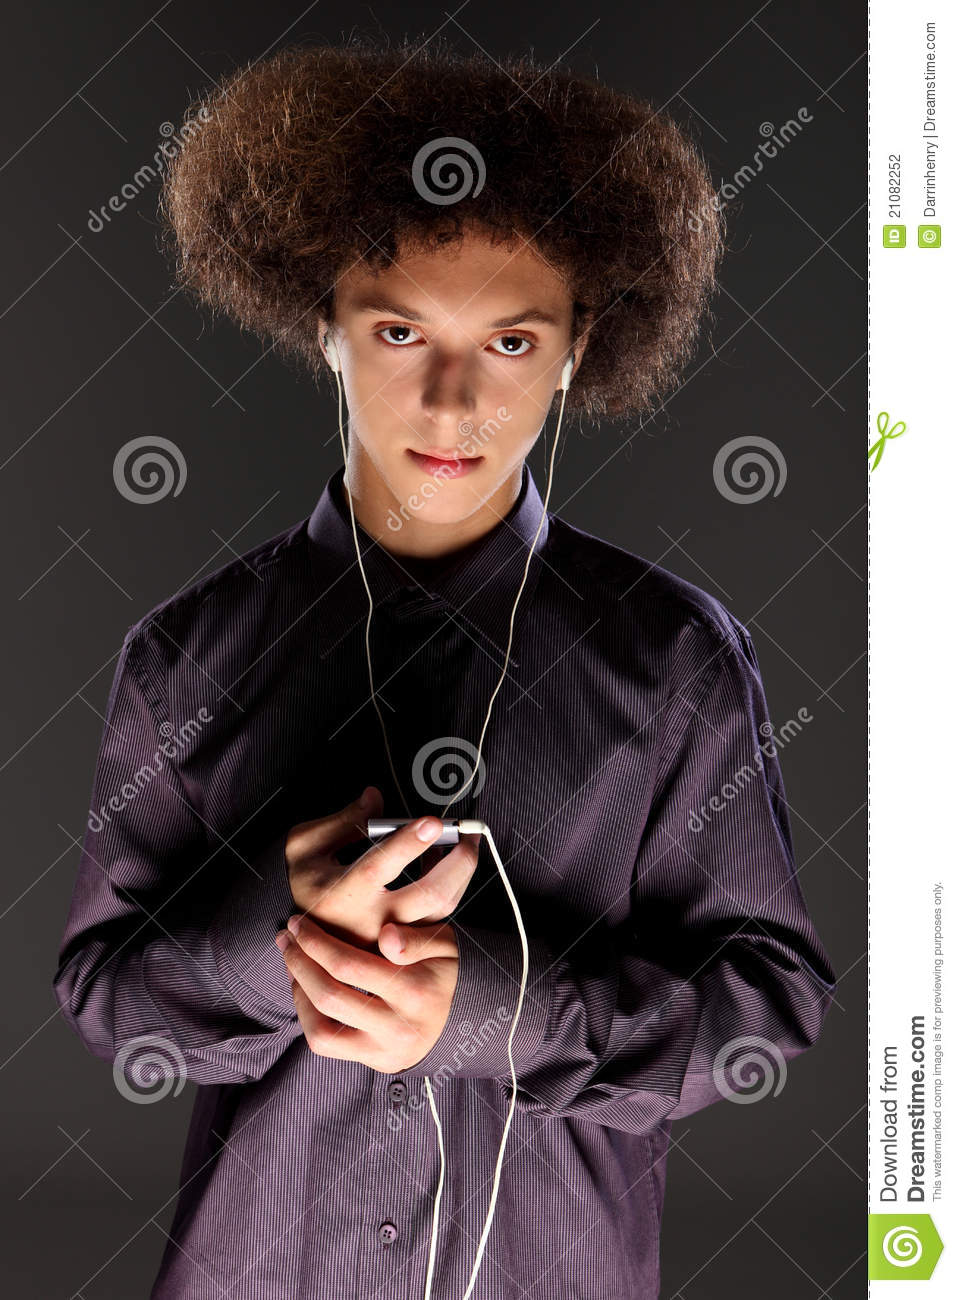 Big Bushy Afro Hair Teenager Listening To Music Stock